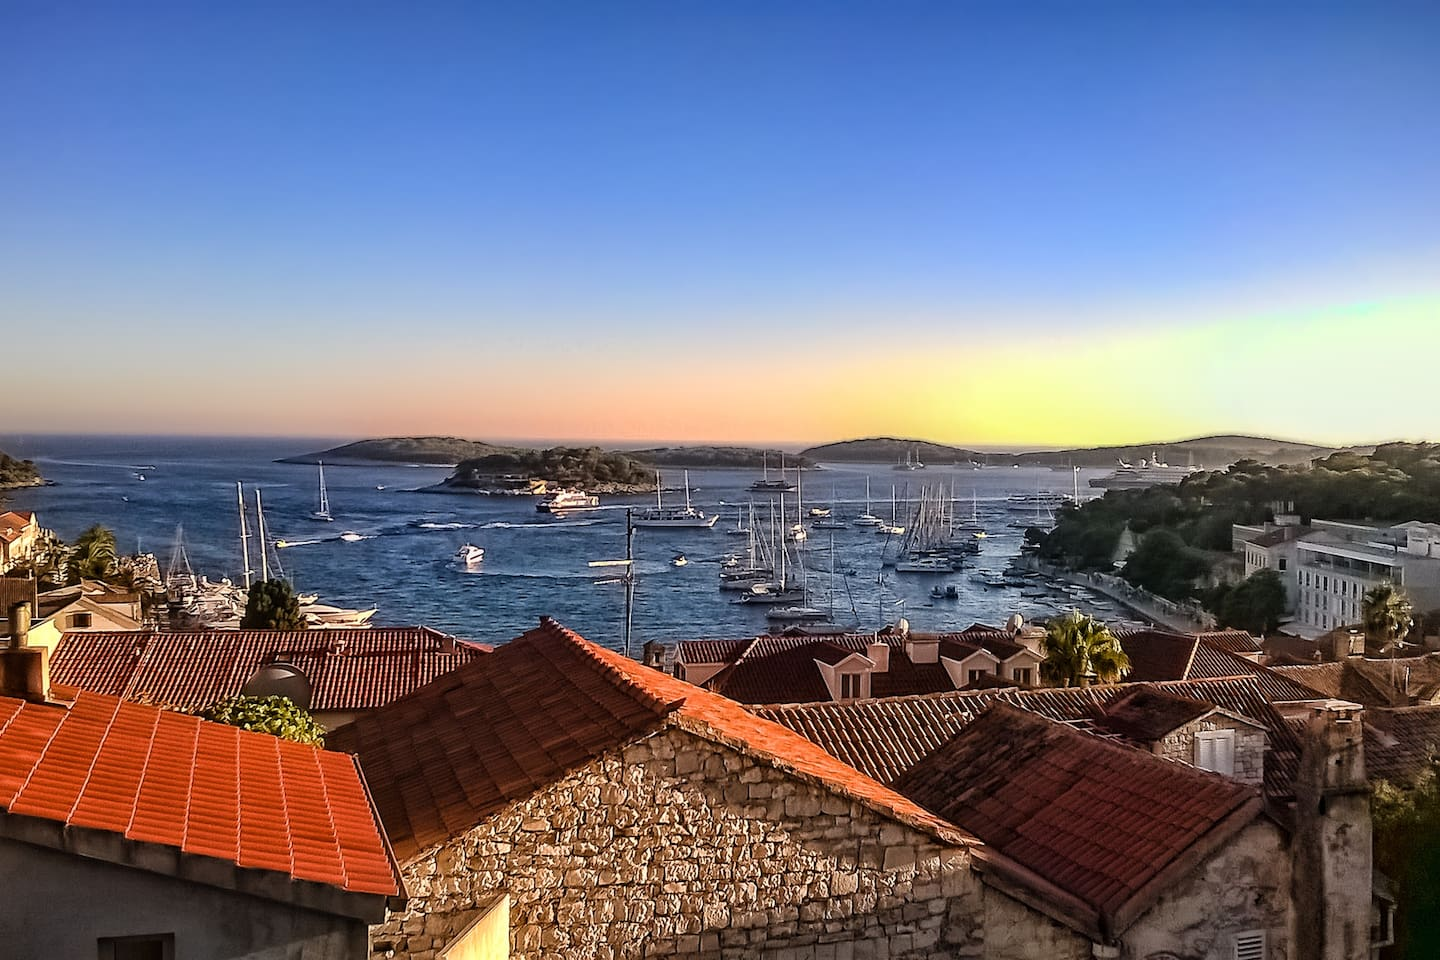 View from room window shows the beauty of Hvar